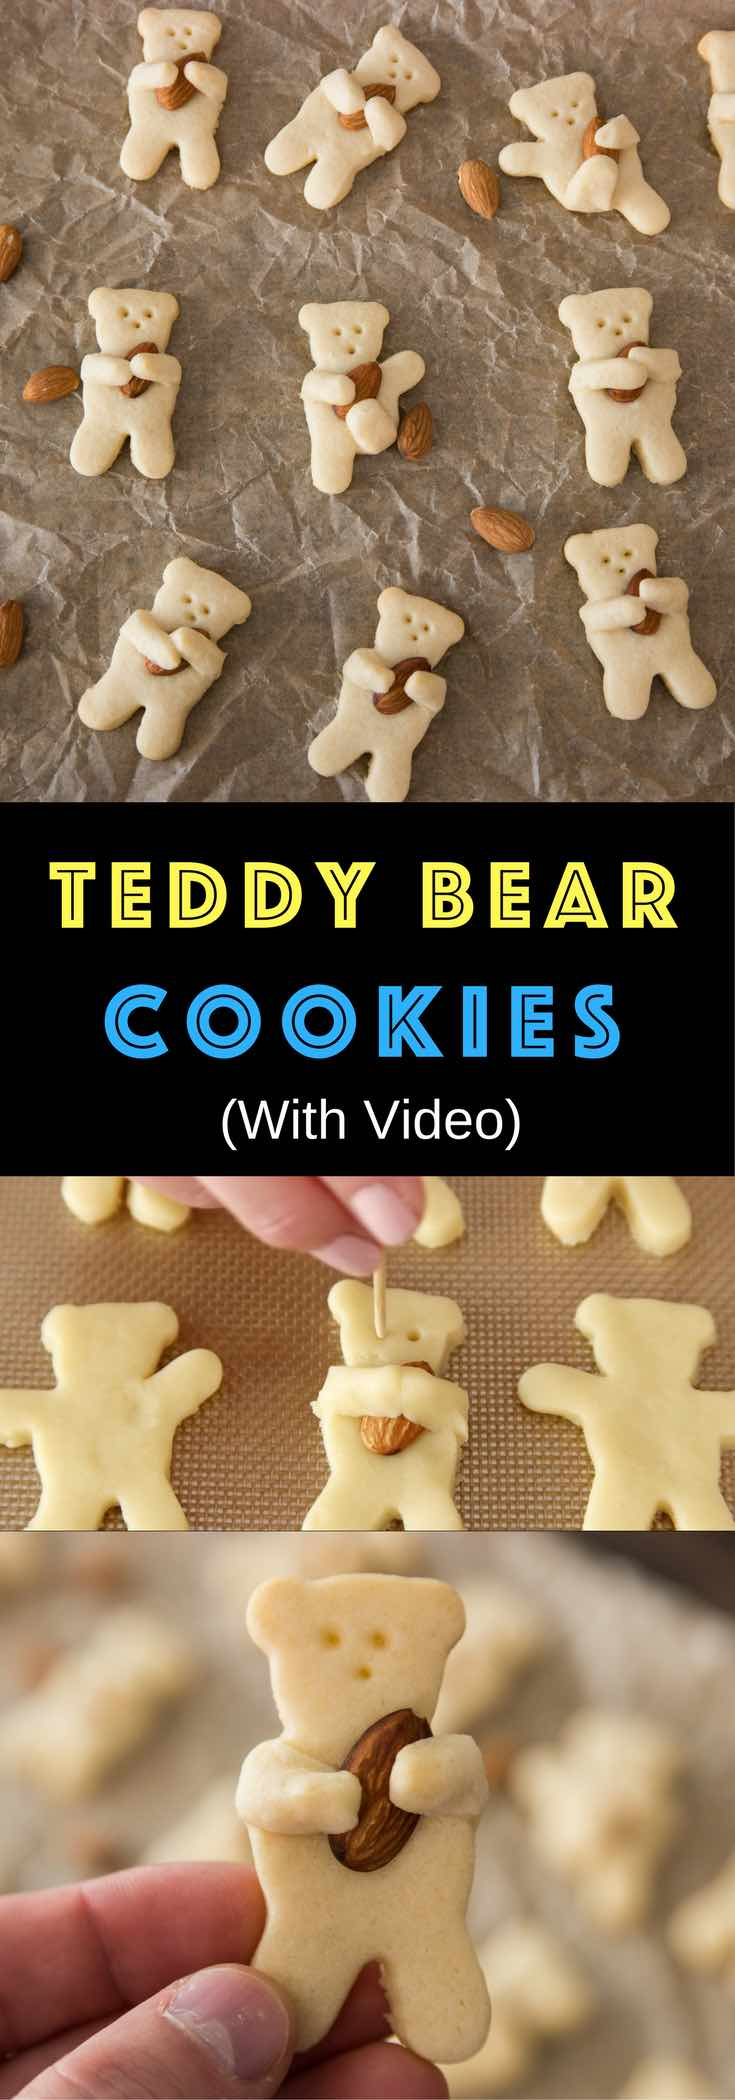 Cutest teddy bear cookies are so delicious and easy to make. All you need is to make the sugar cutter cookie dough, and cut them into teddy bear shapes. Have some fun with different positions: hugging almonds, play football, etc. Quick and easy recipe. Party food. Video recipe. | Tipbuzz.com